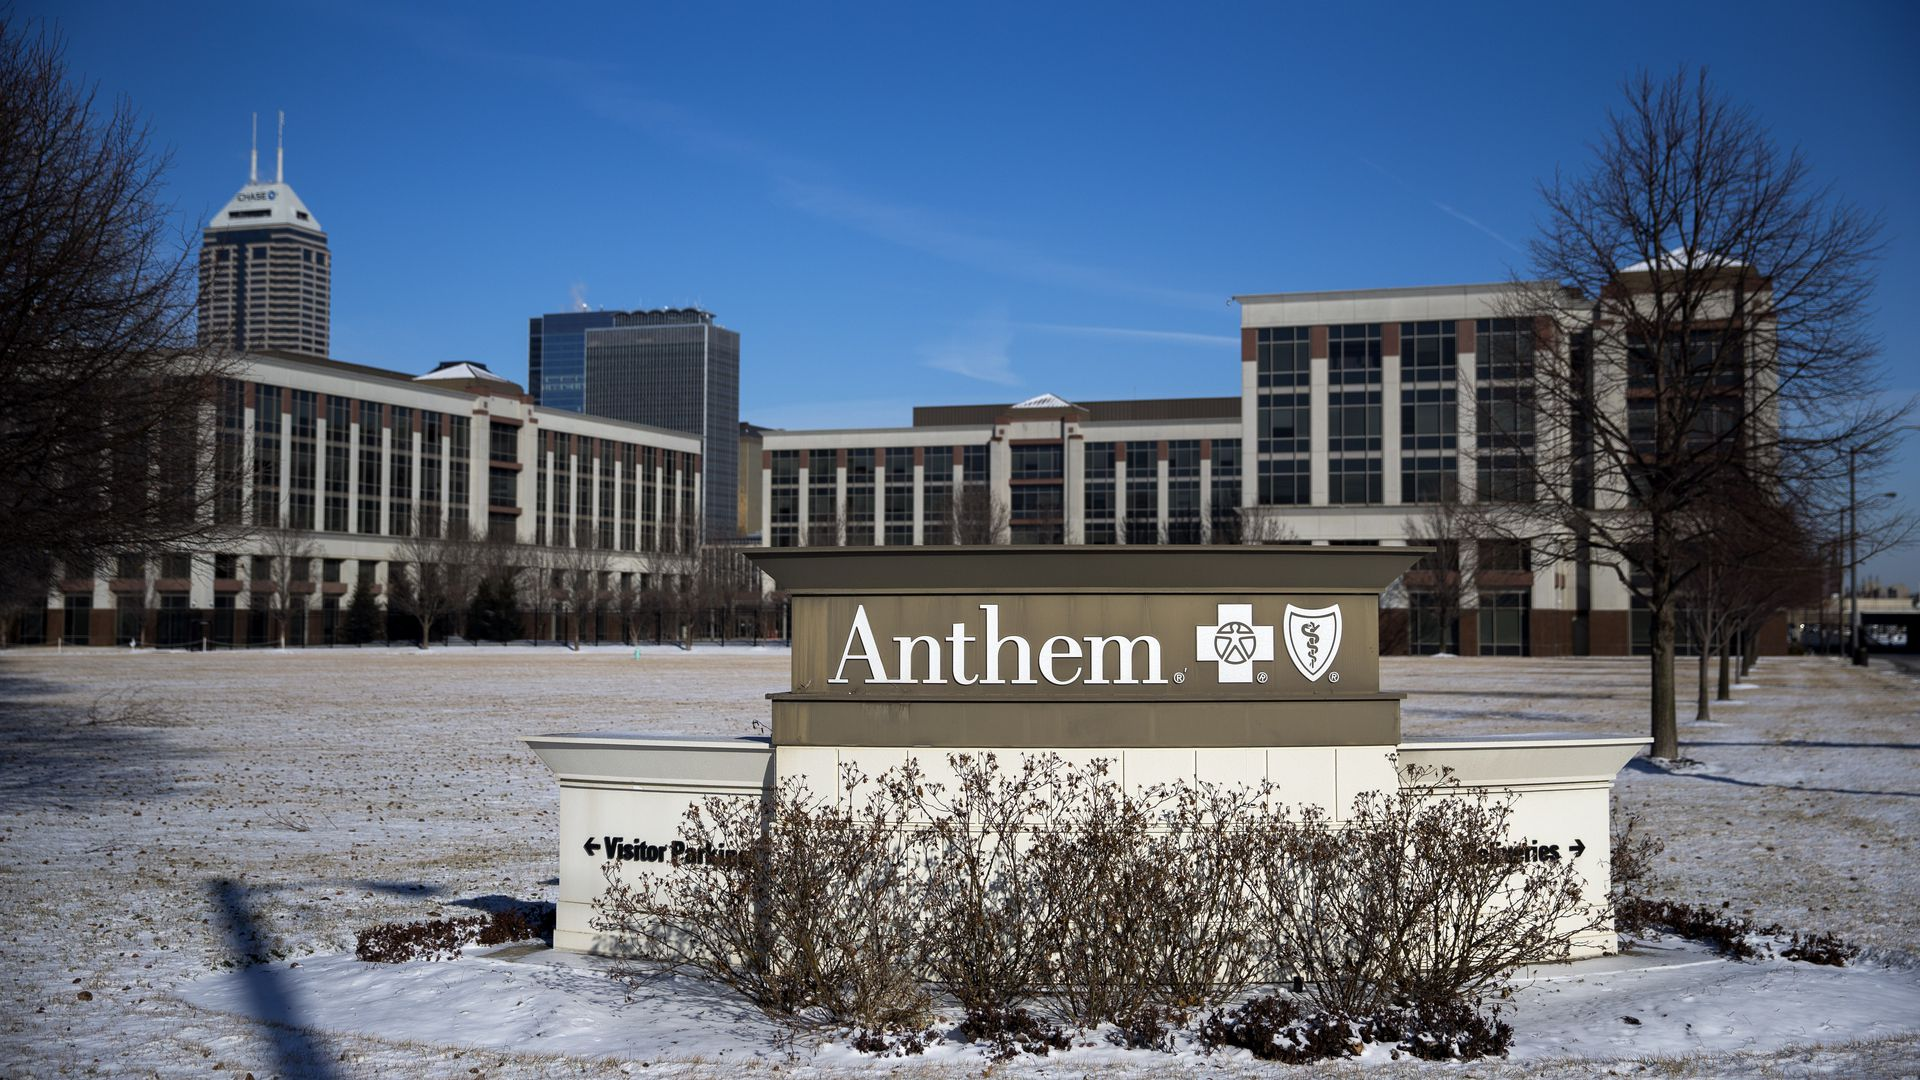 Anthem's headquarters in Indianapolis